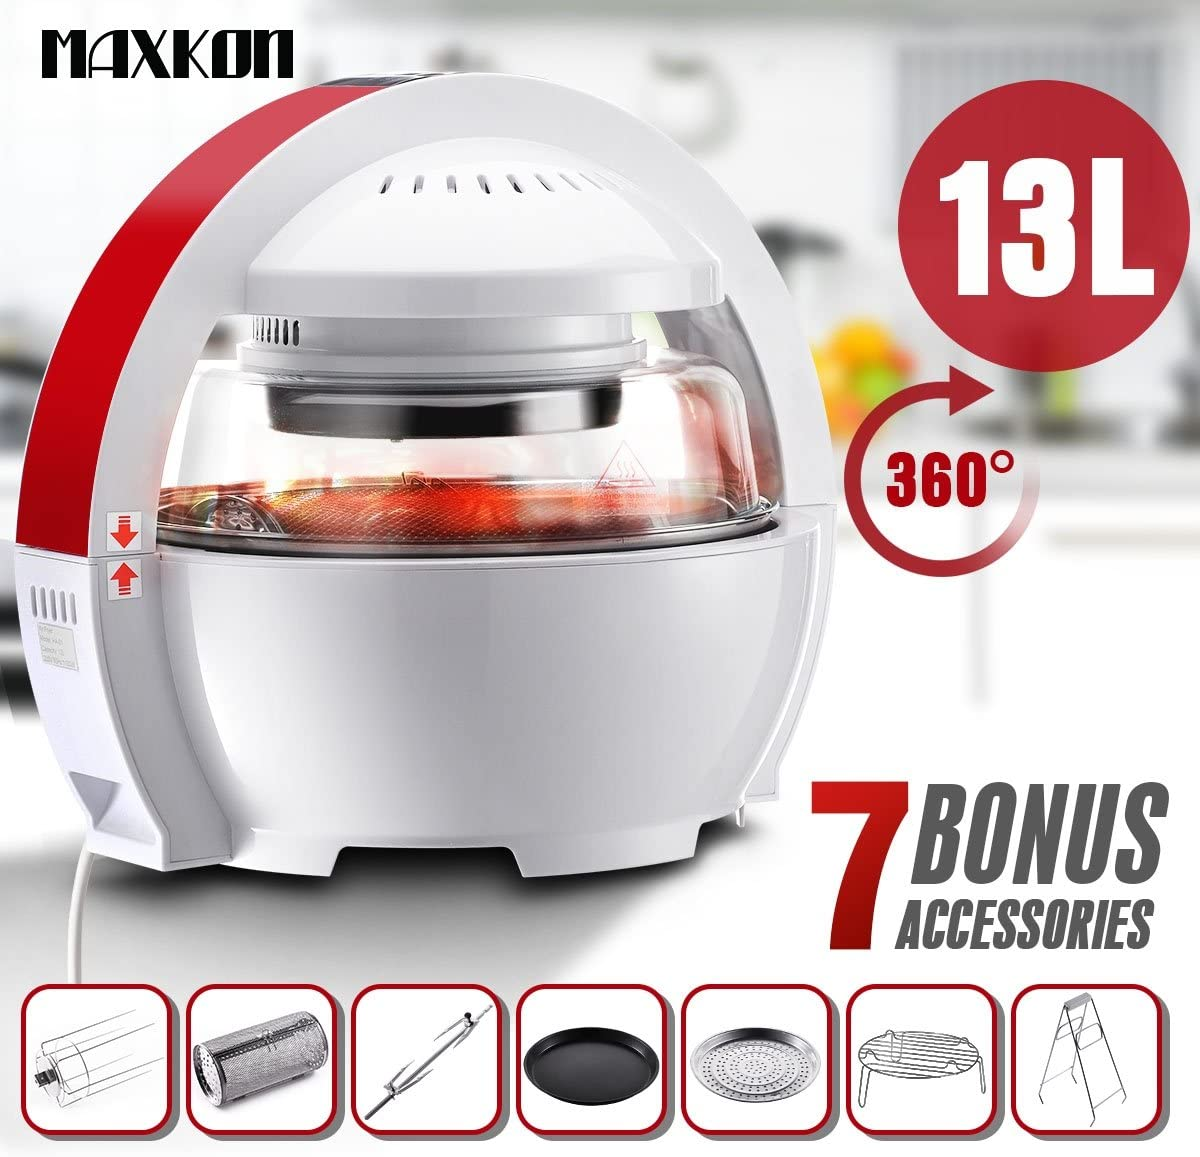 Maxkon UFO Designed Multi-Purpose Healthy Air Fryer Oven Cooker